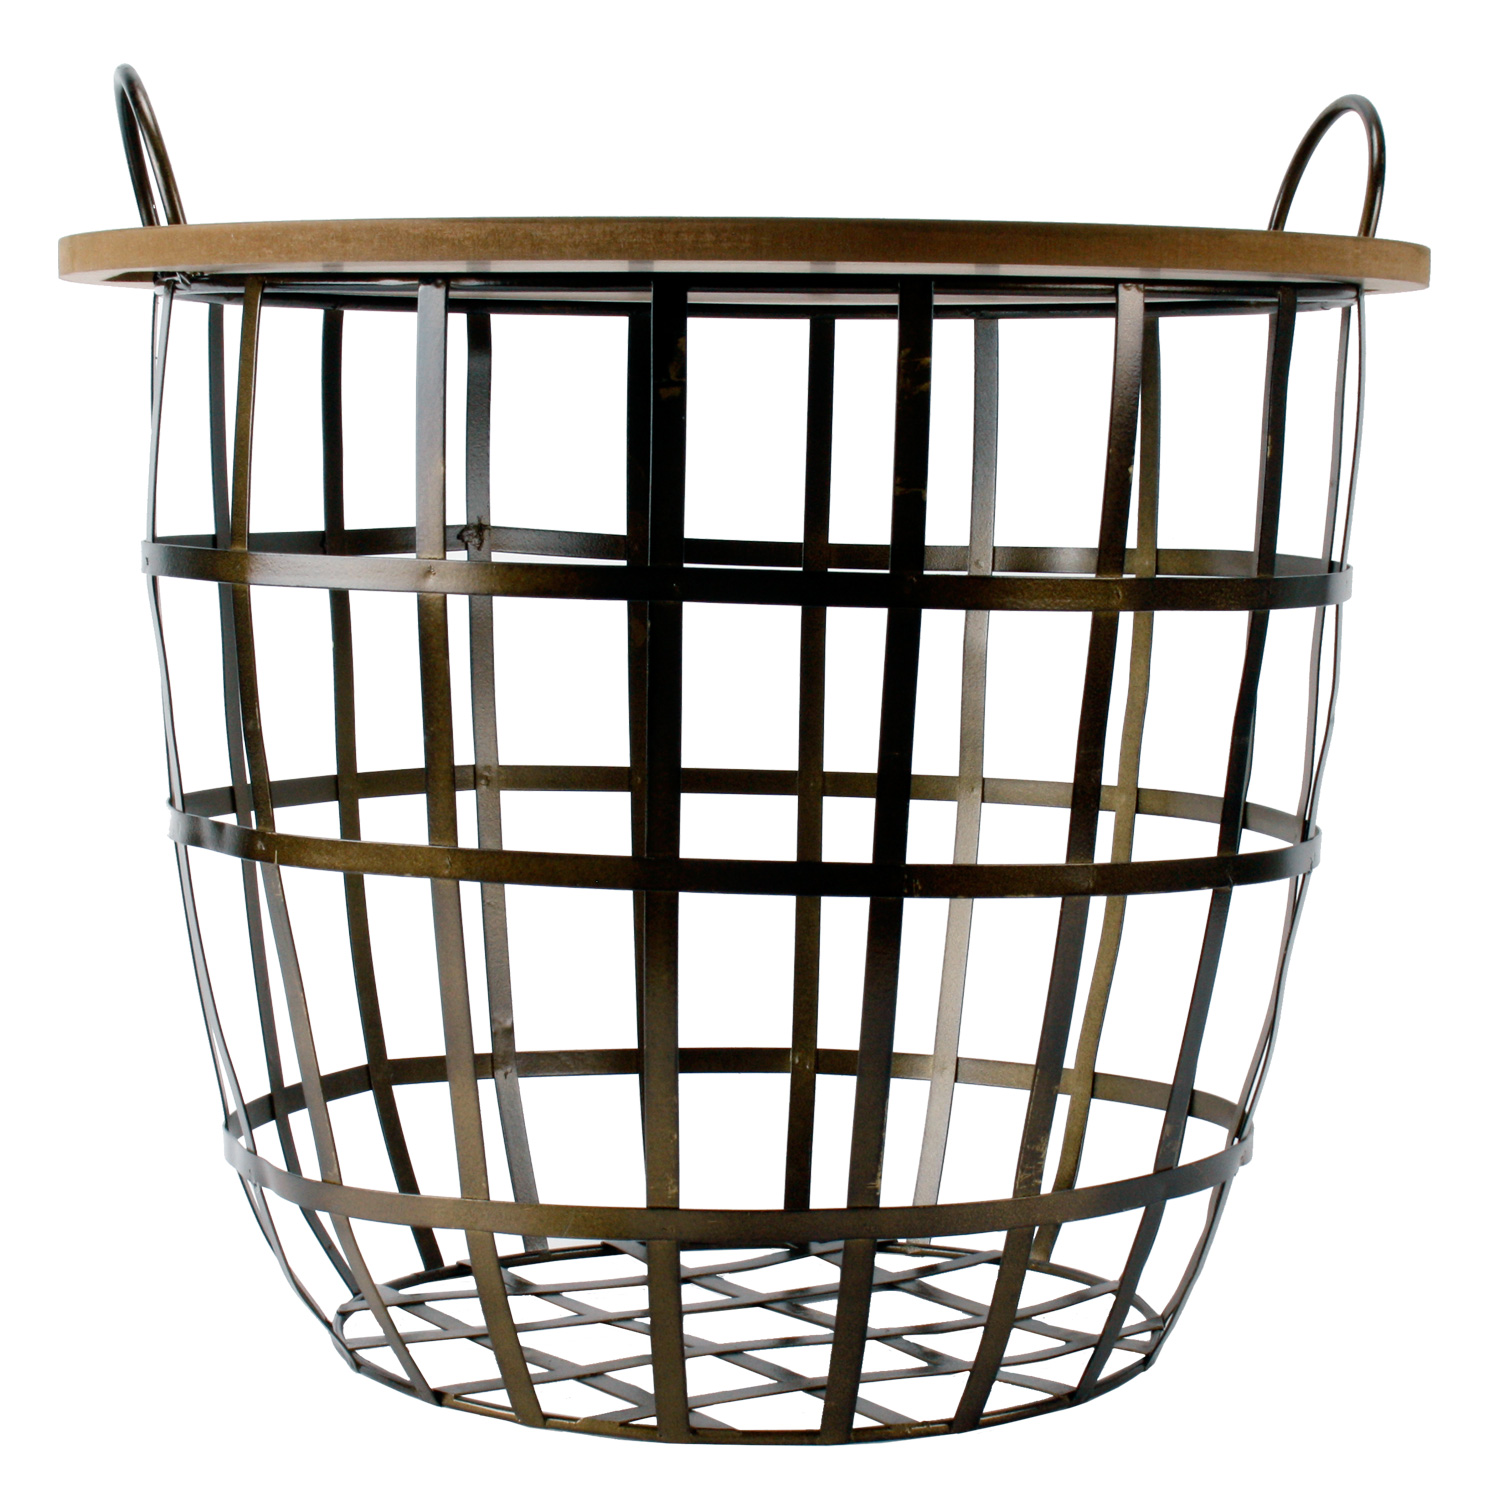 type writer intl get unlimited furniture delivery from crate side table wearable metal basket vintage living room wire end accent bedroom lamps target small cocktail tables mid